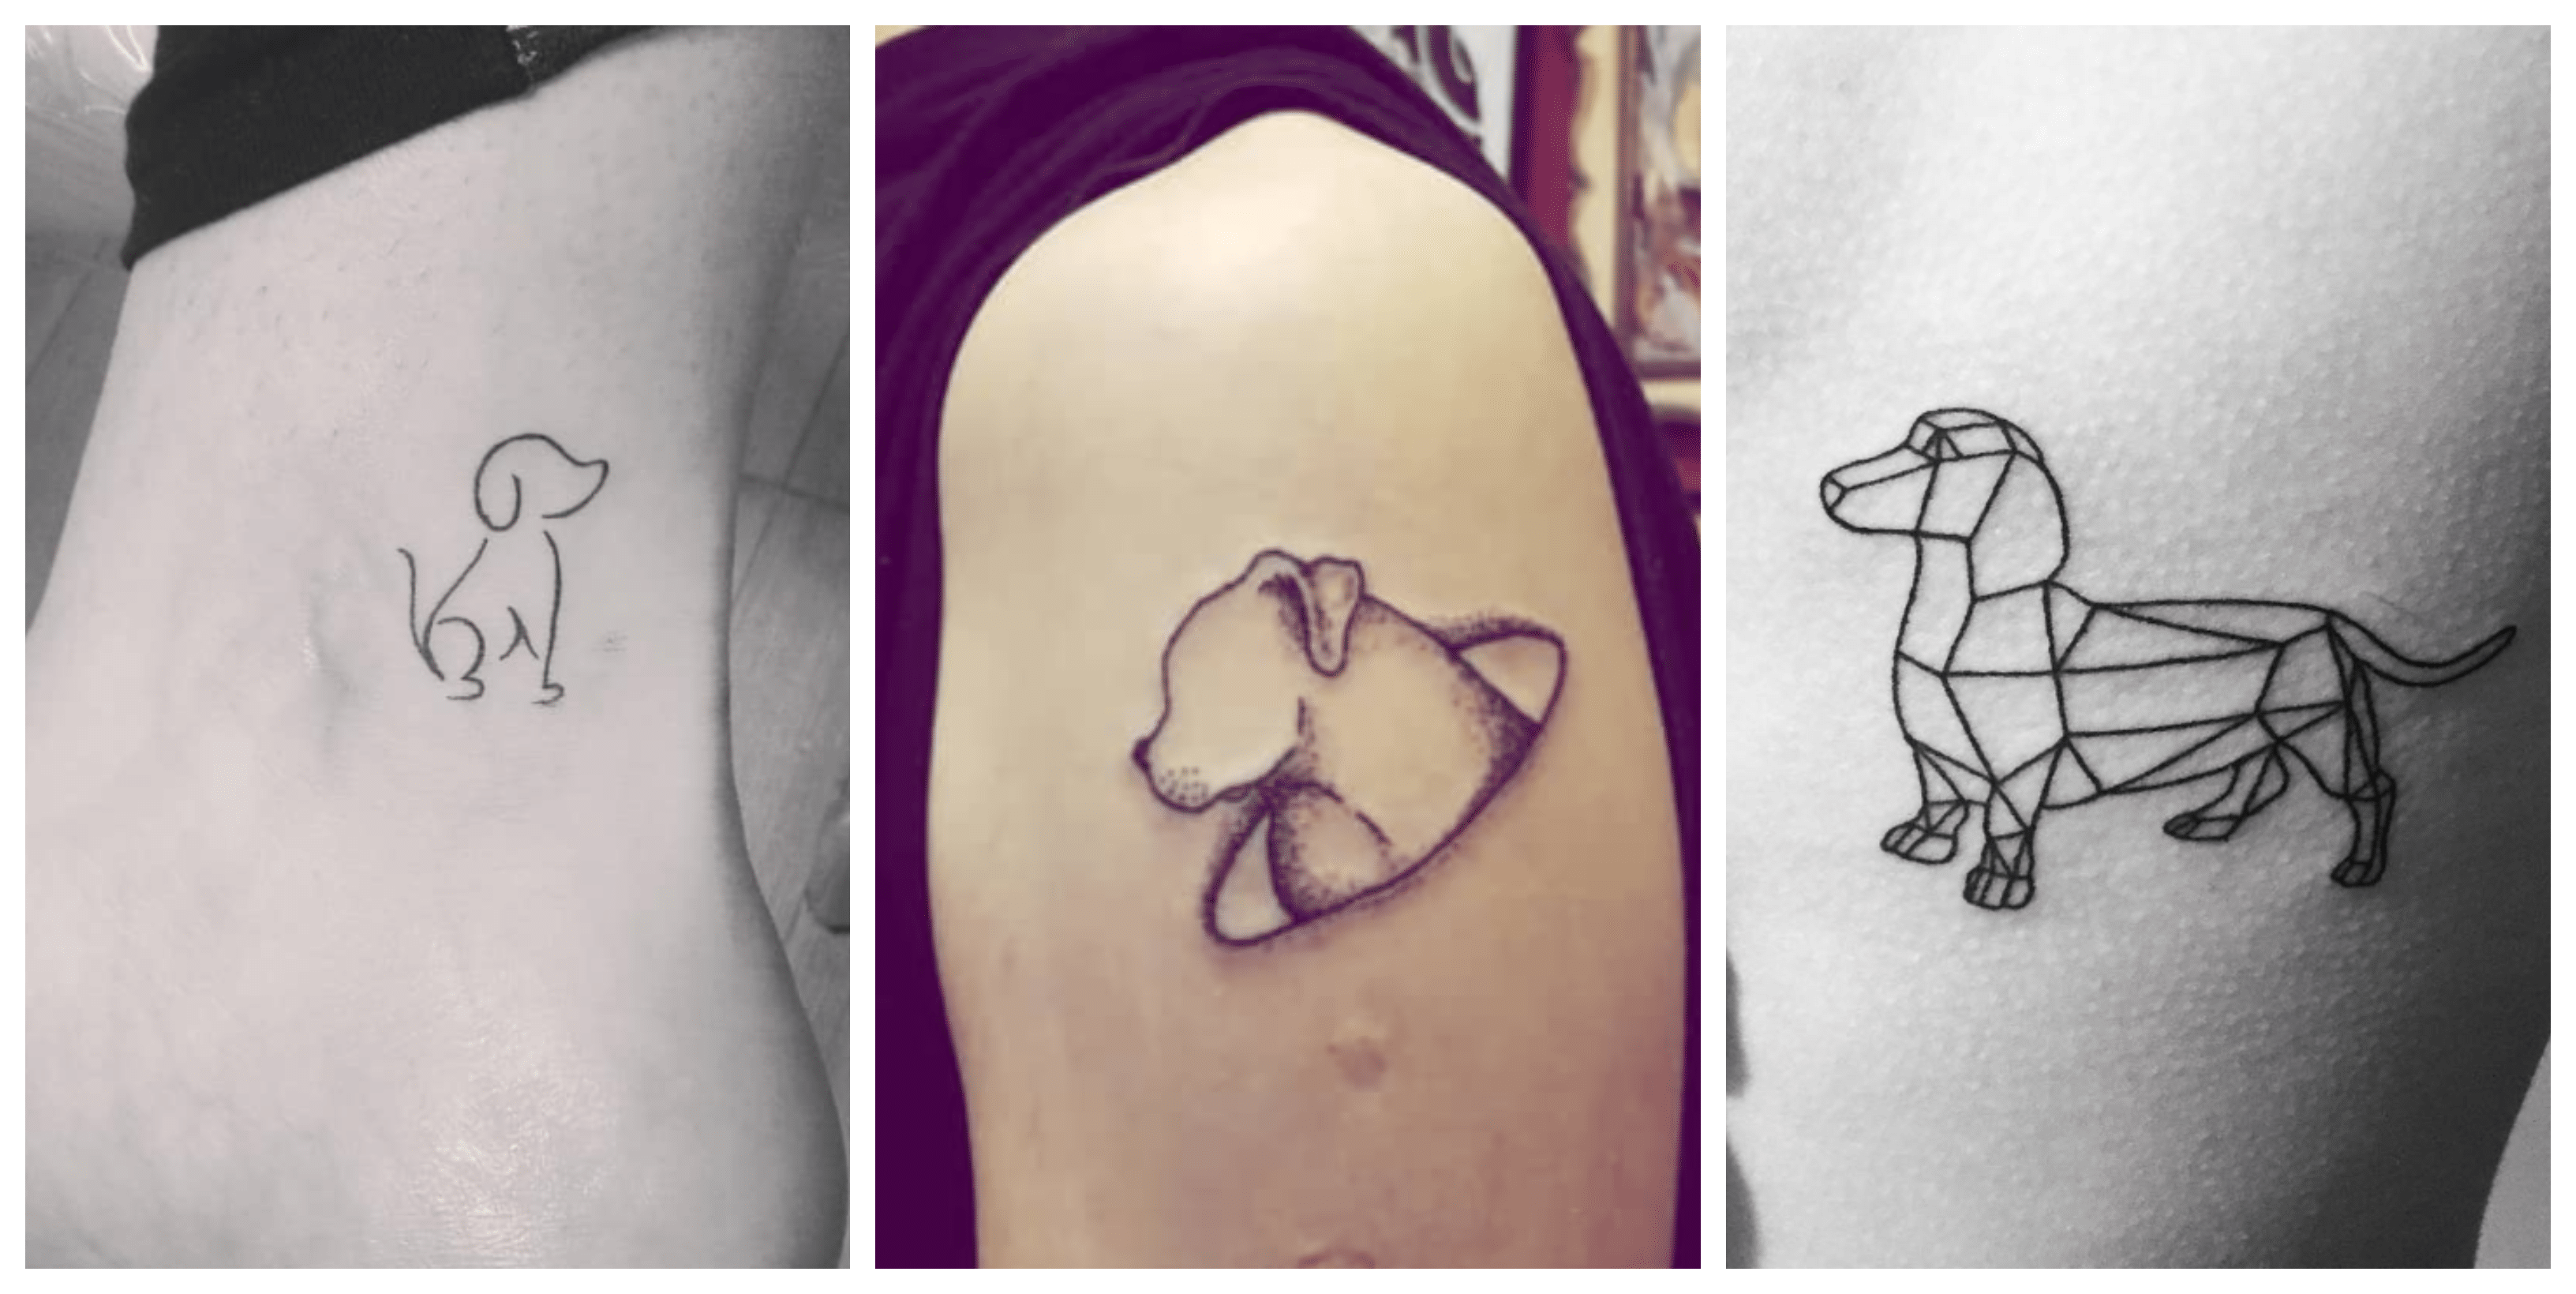 15 drawings of dog silhouette tattoos to inspire you in 2018